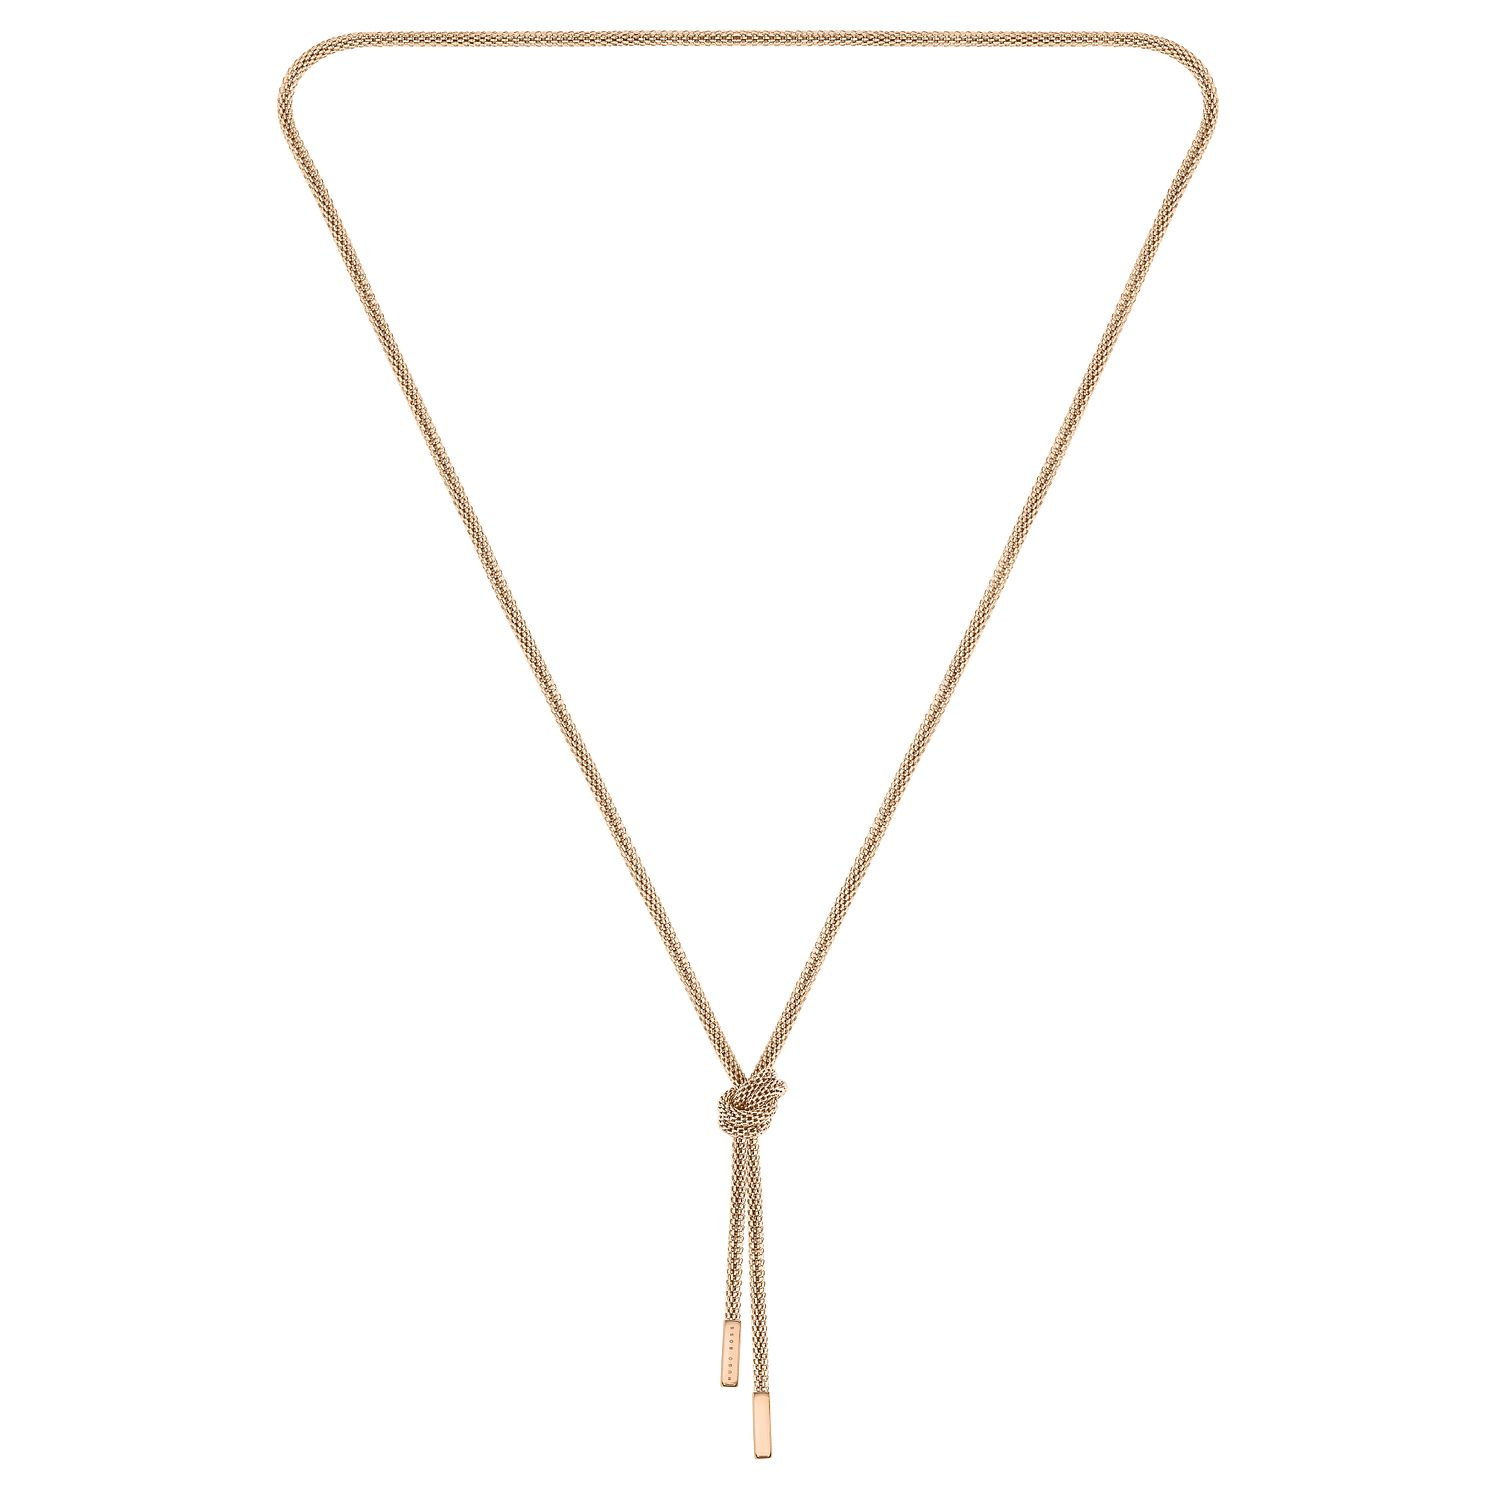 BOSS Rosette Ladies' Rose Gold Tone Necklace - Product number 5007038